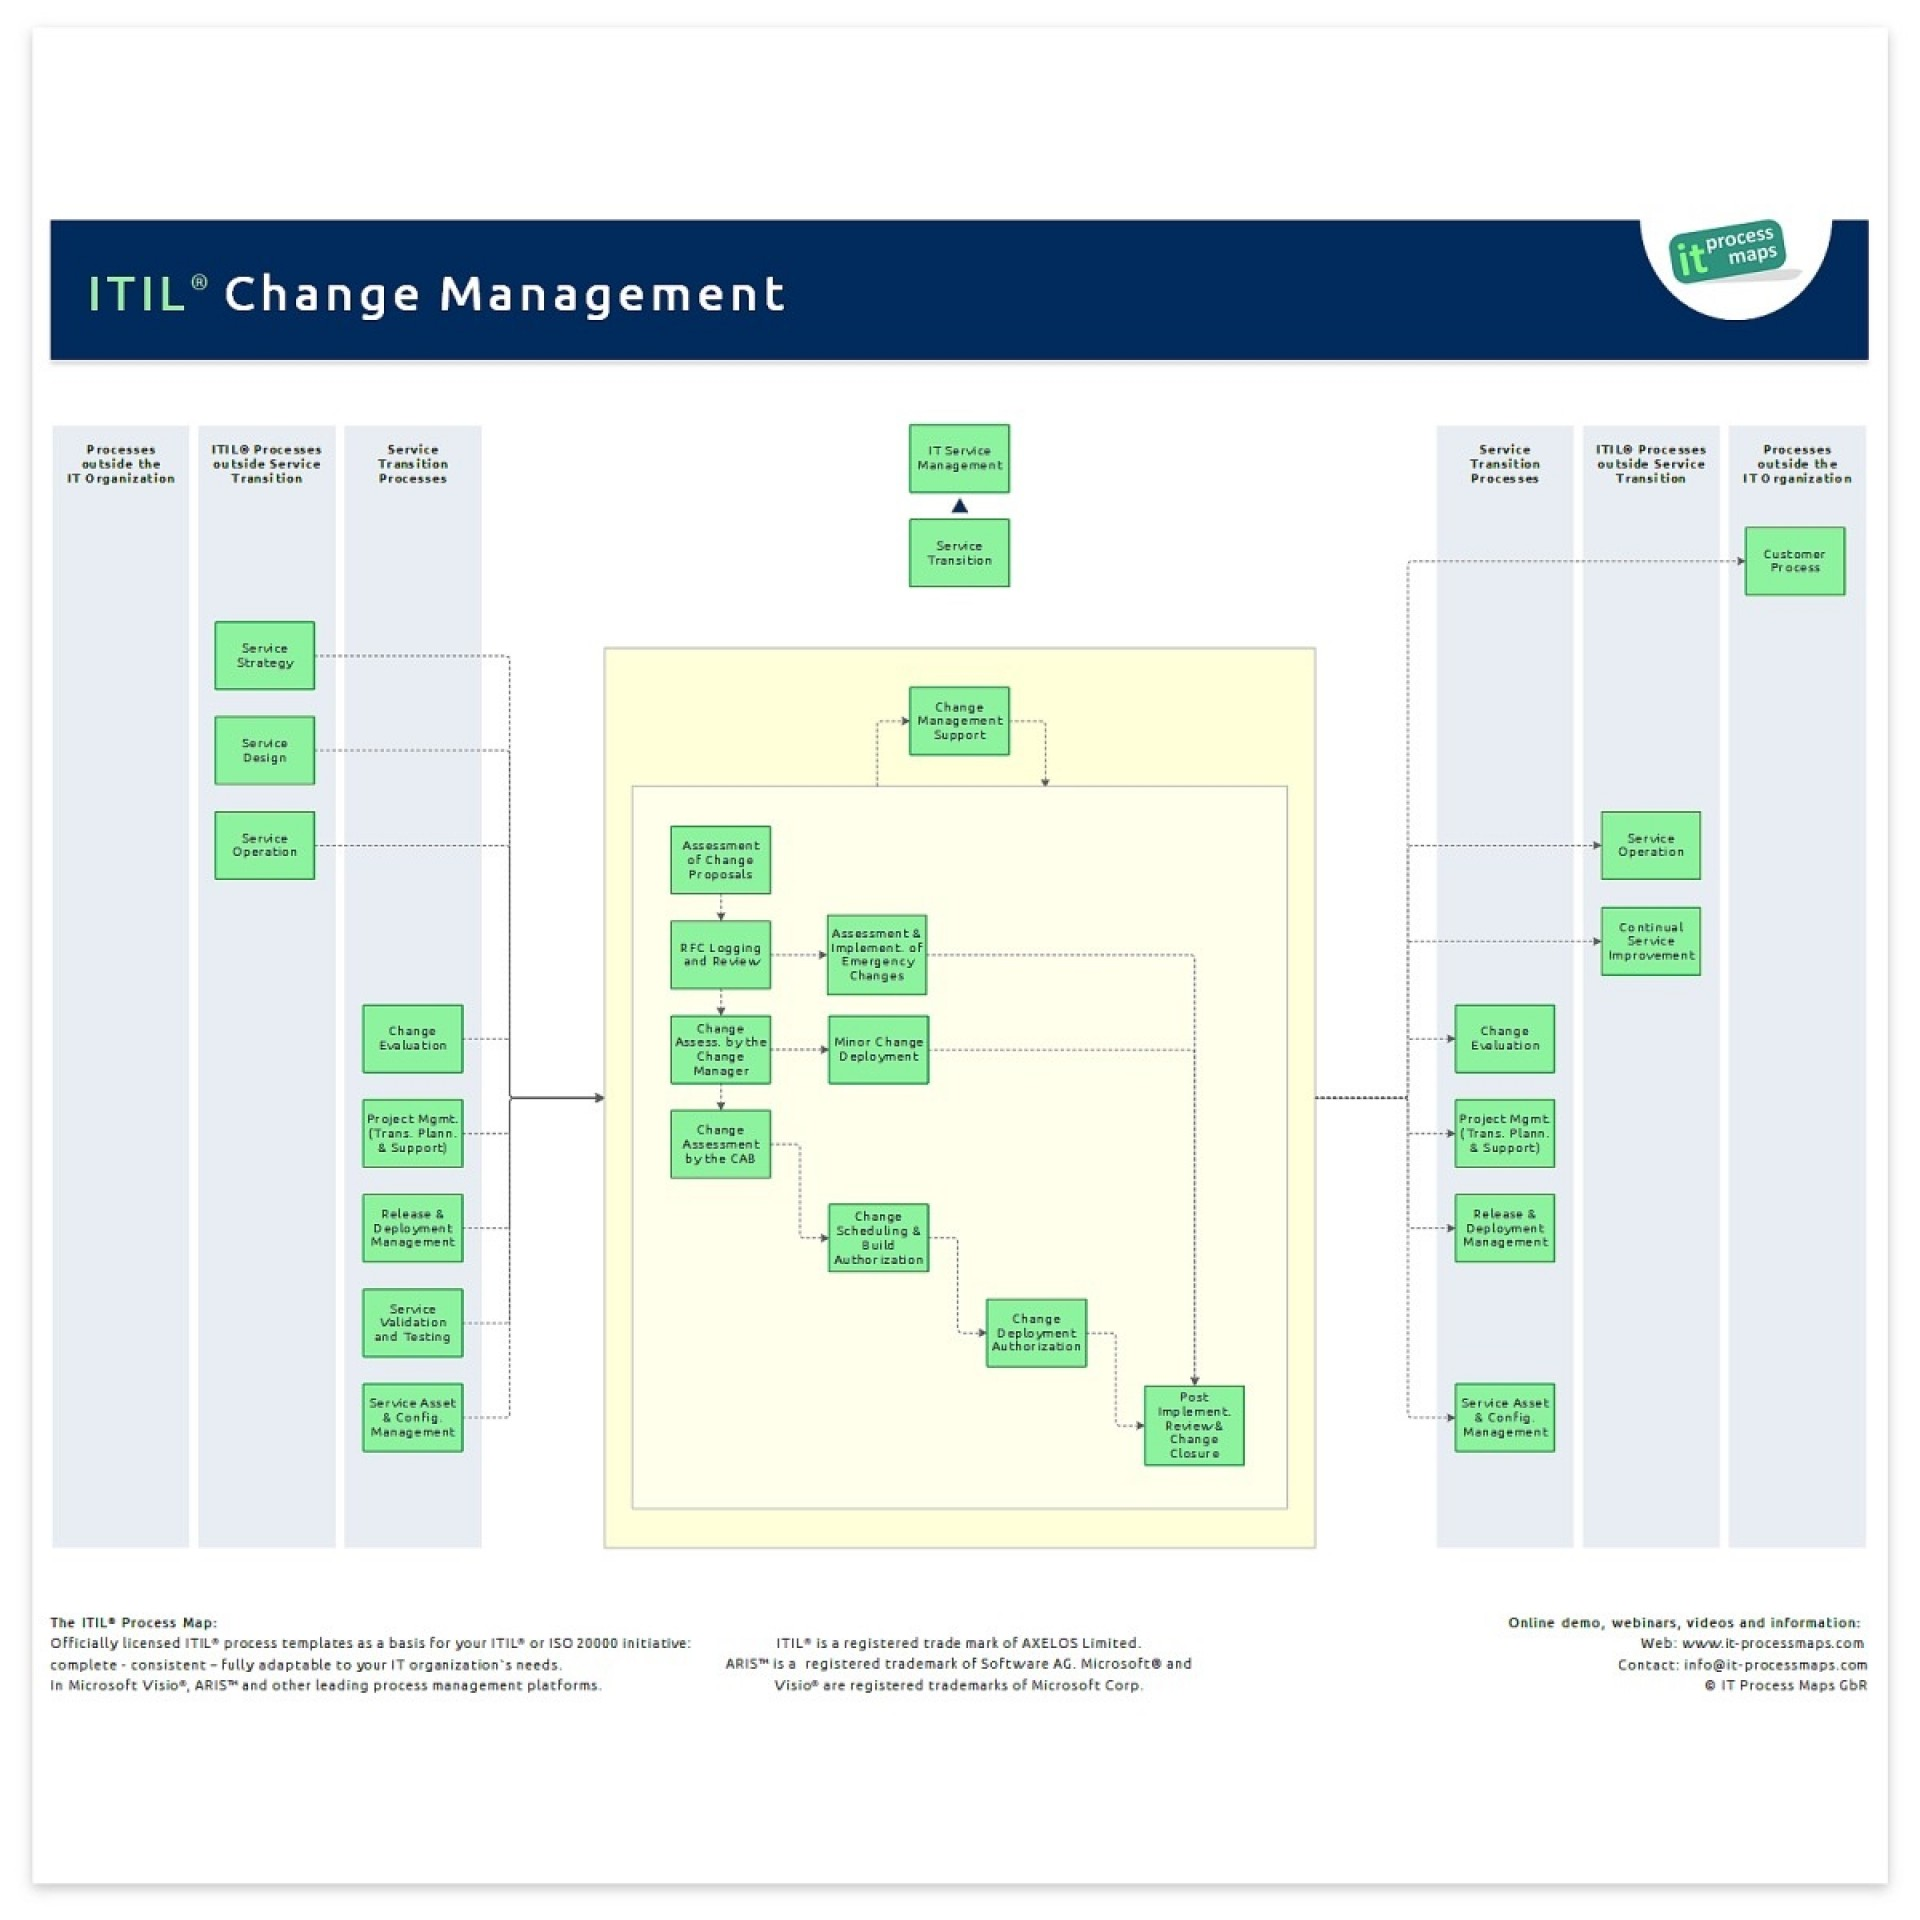 002 Awesome Change Management Proces Template High Def 1920